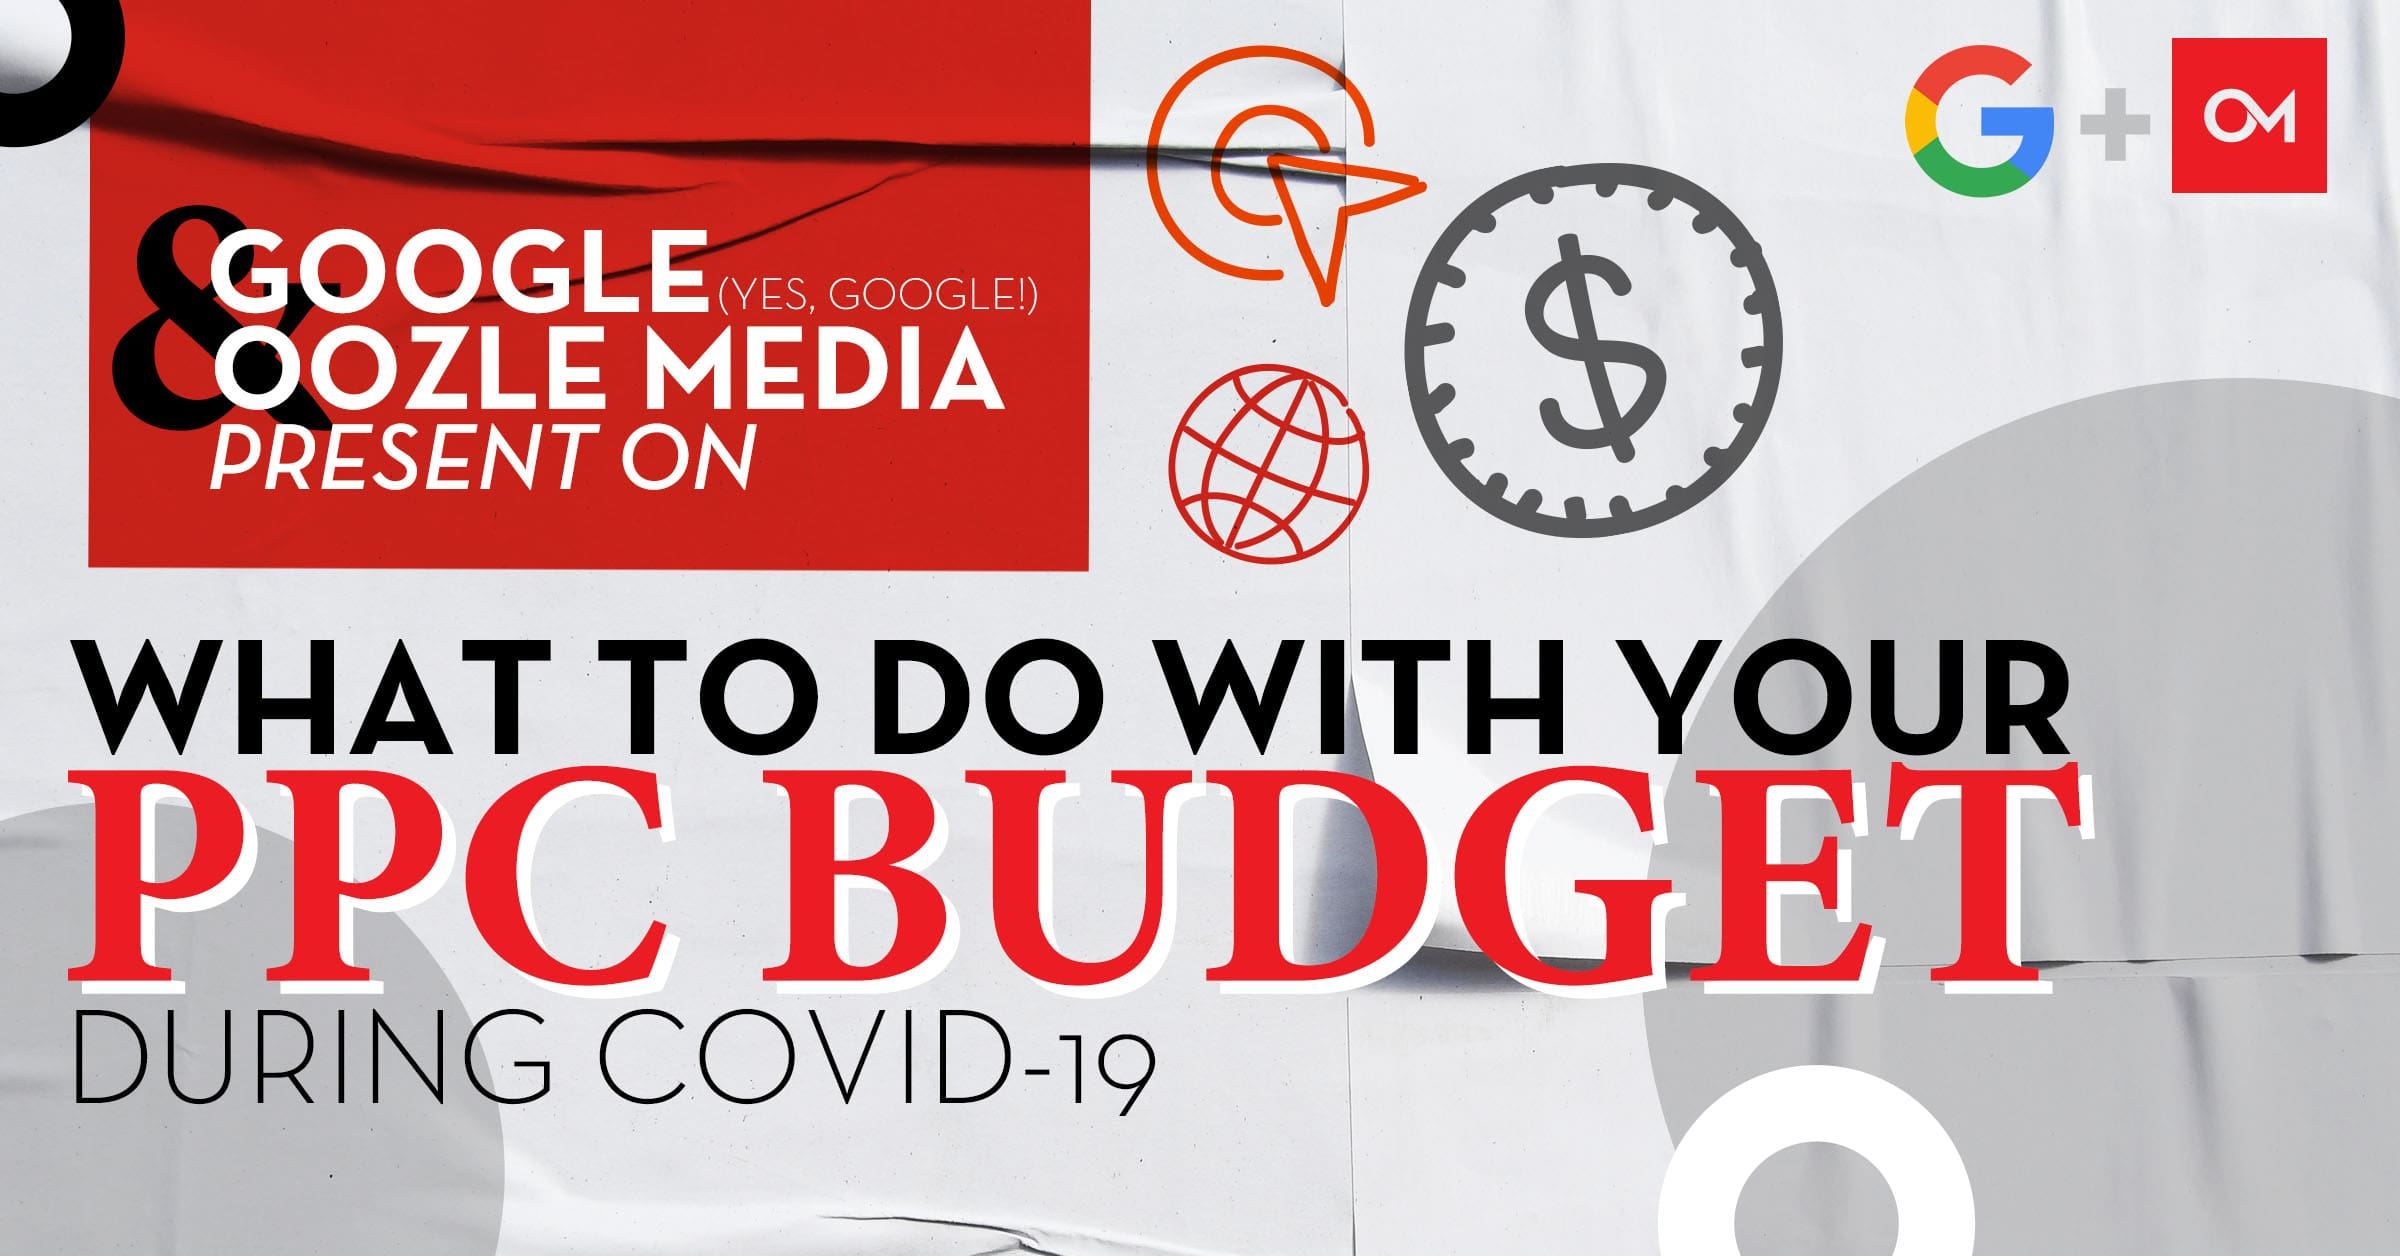 What to do with your PPC budget during COVID-19